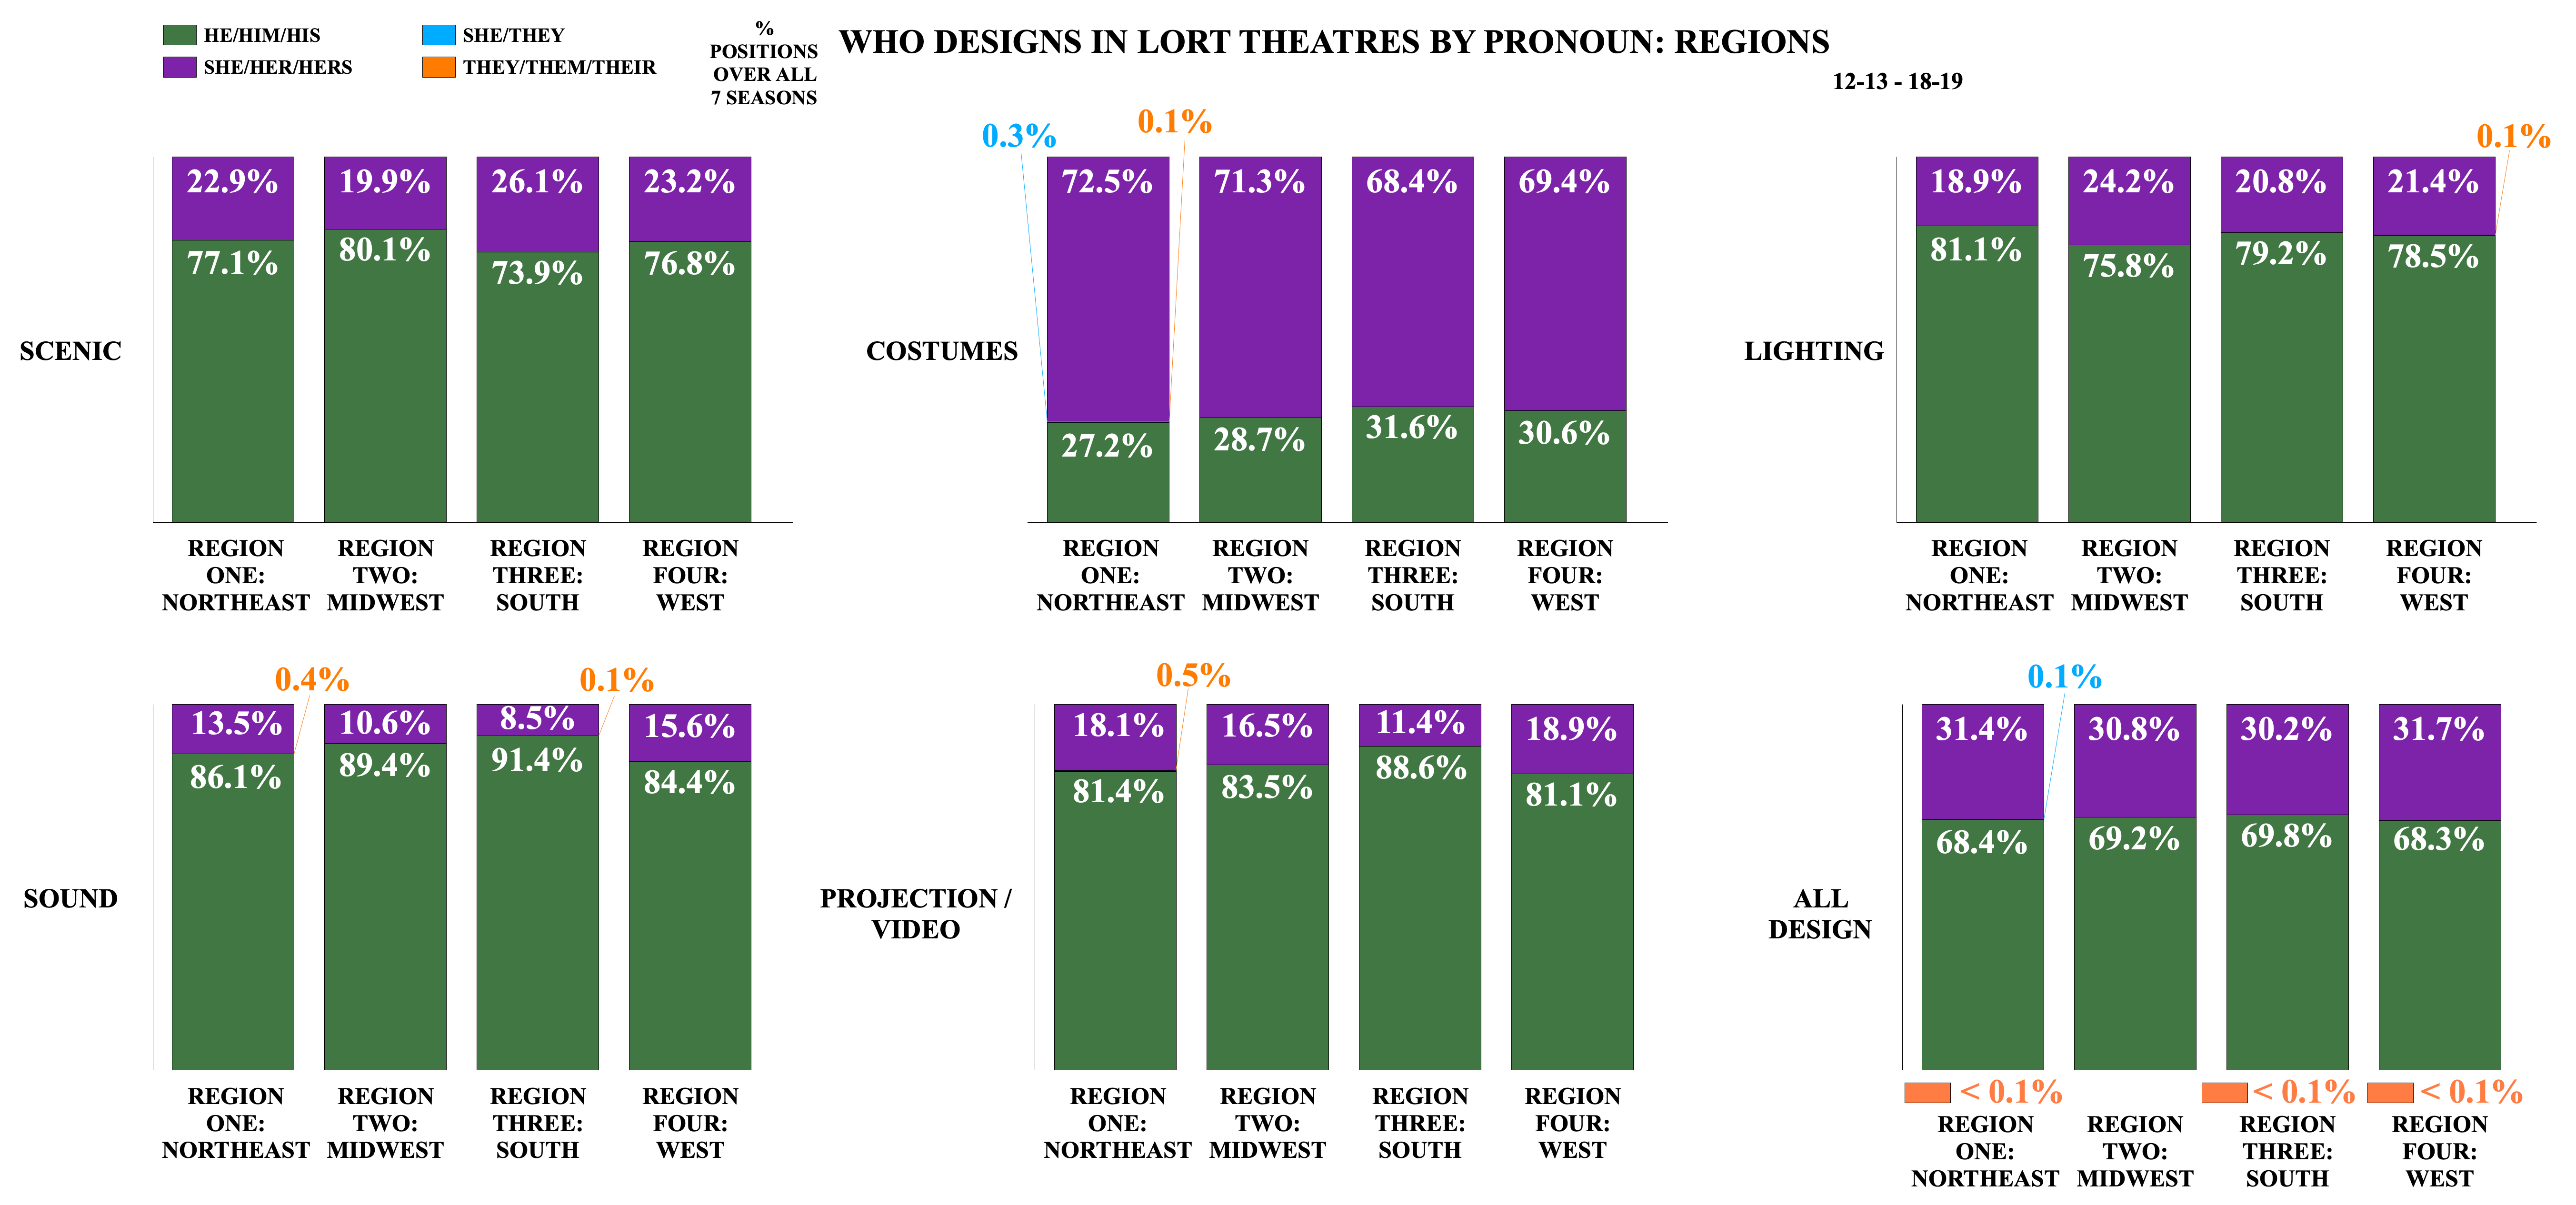 Who Designs in LORT Theatres by Pronoun: Region